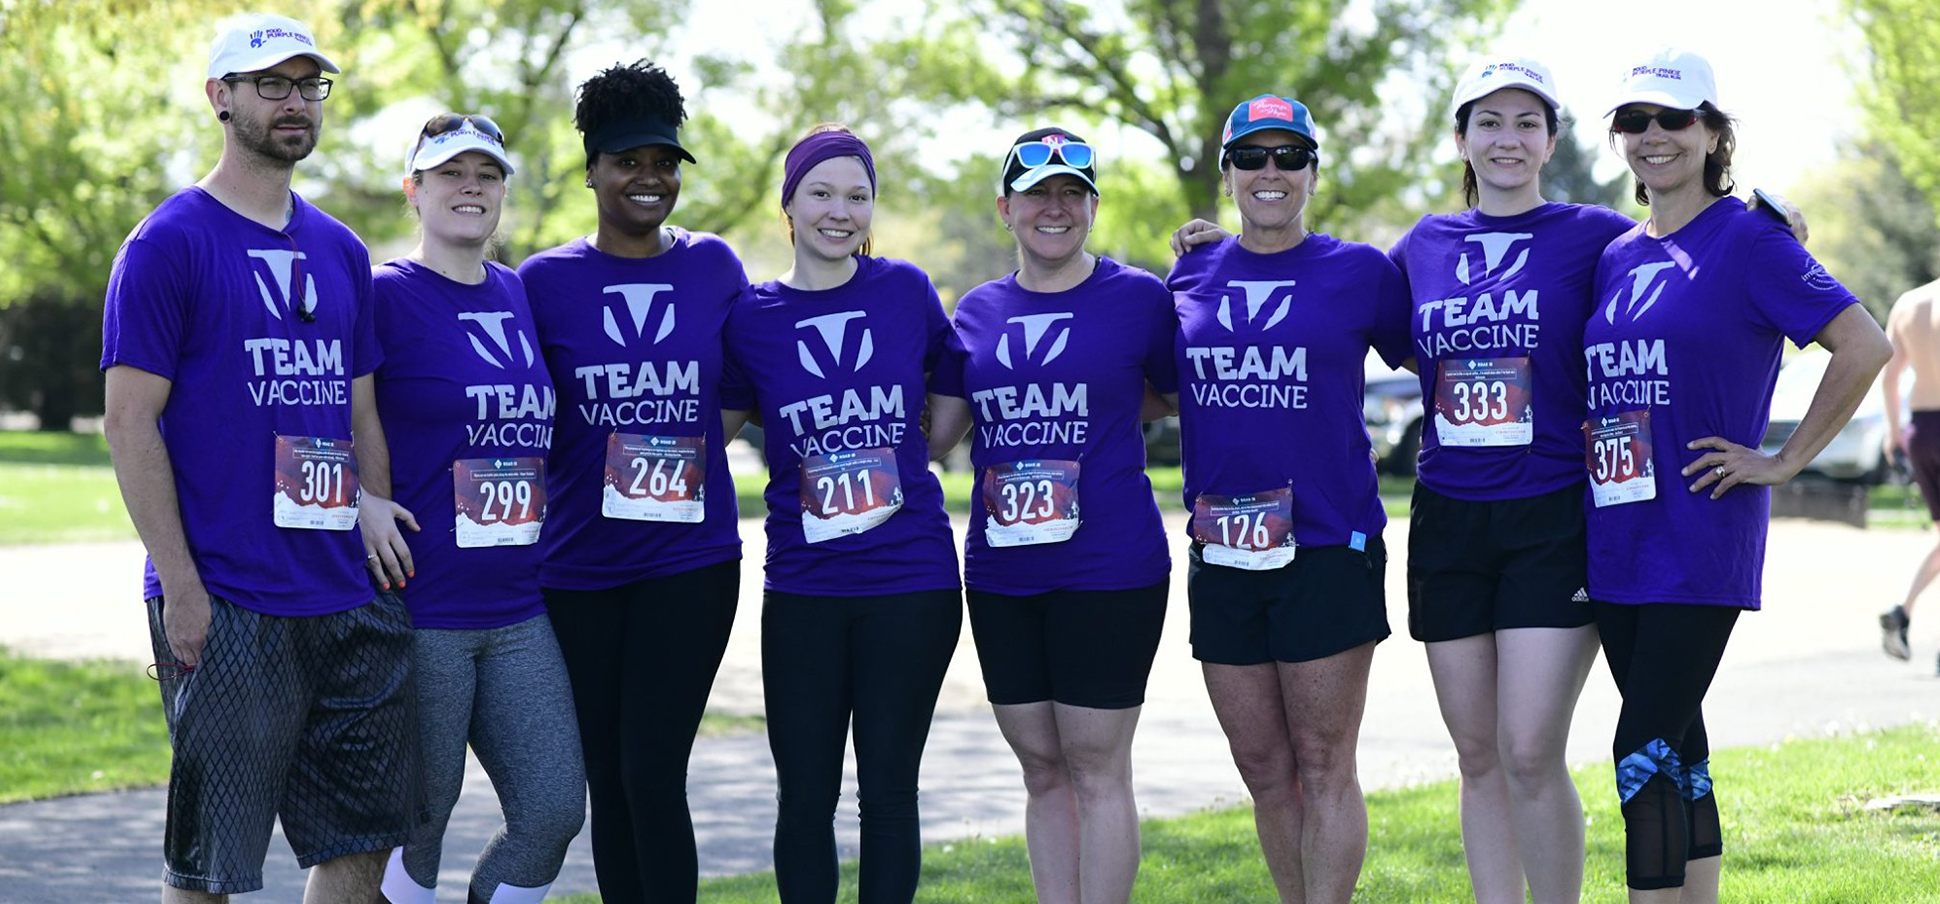 Group of Team Vaccine runners at event